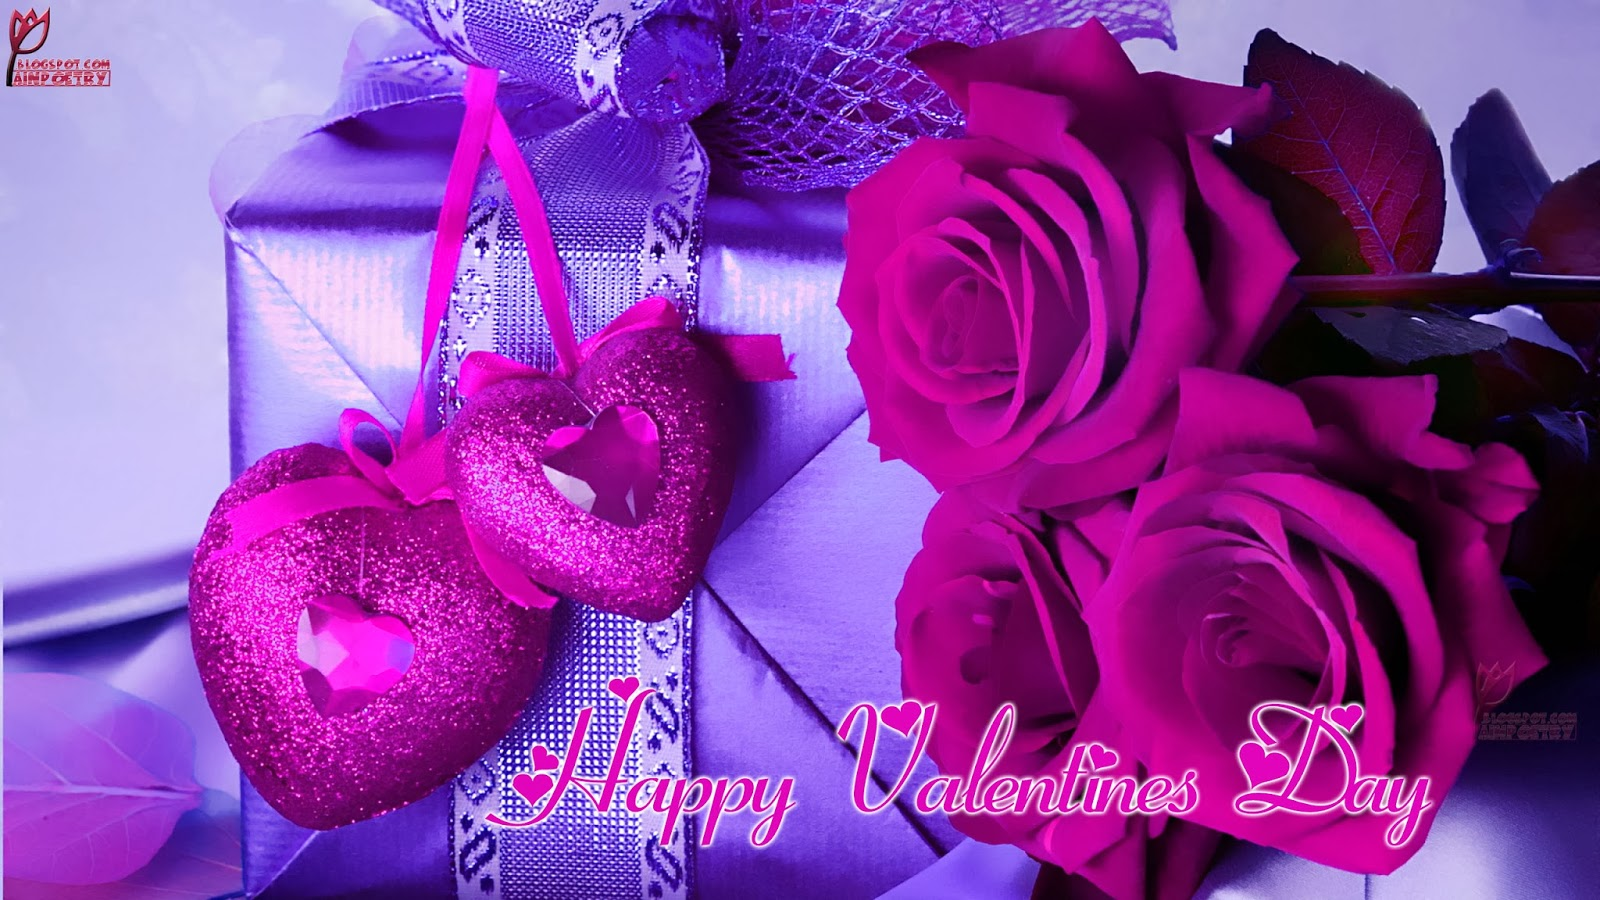 Happy-Valentines-Day-Wallpaper-Wishes-With-Flowers-And-Special-Gift-With-Heart-Image-HD-Wide